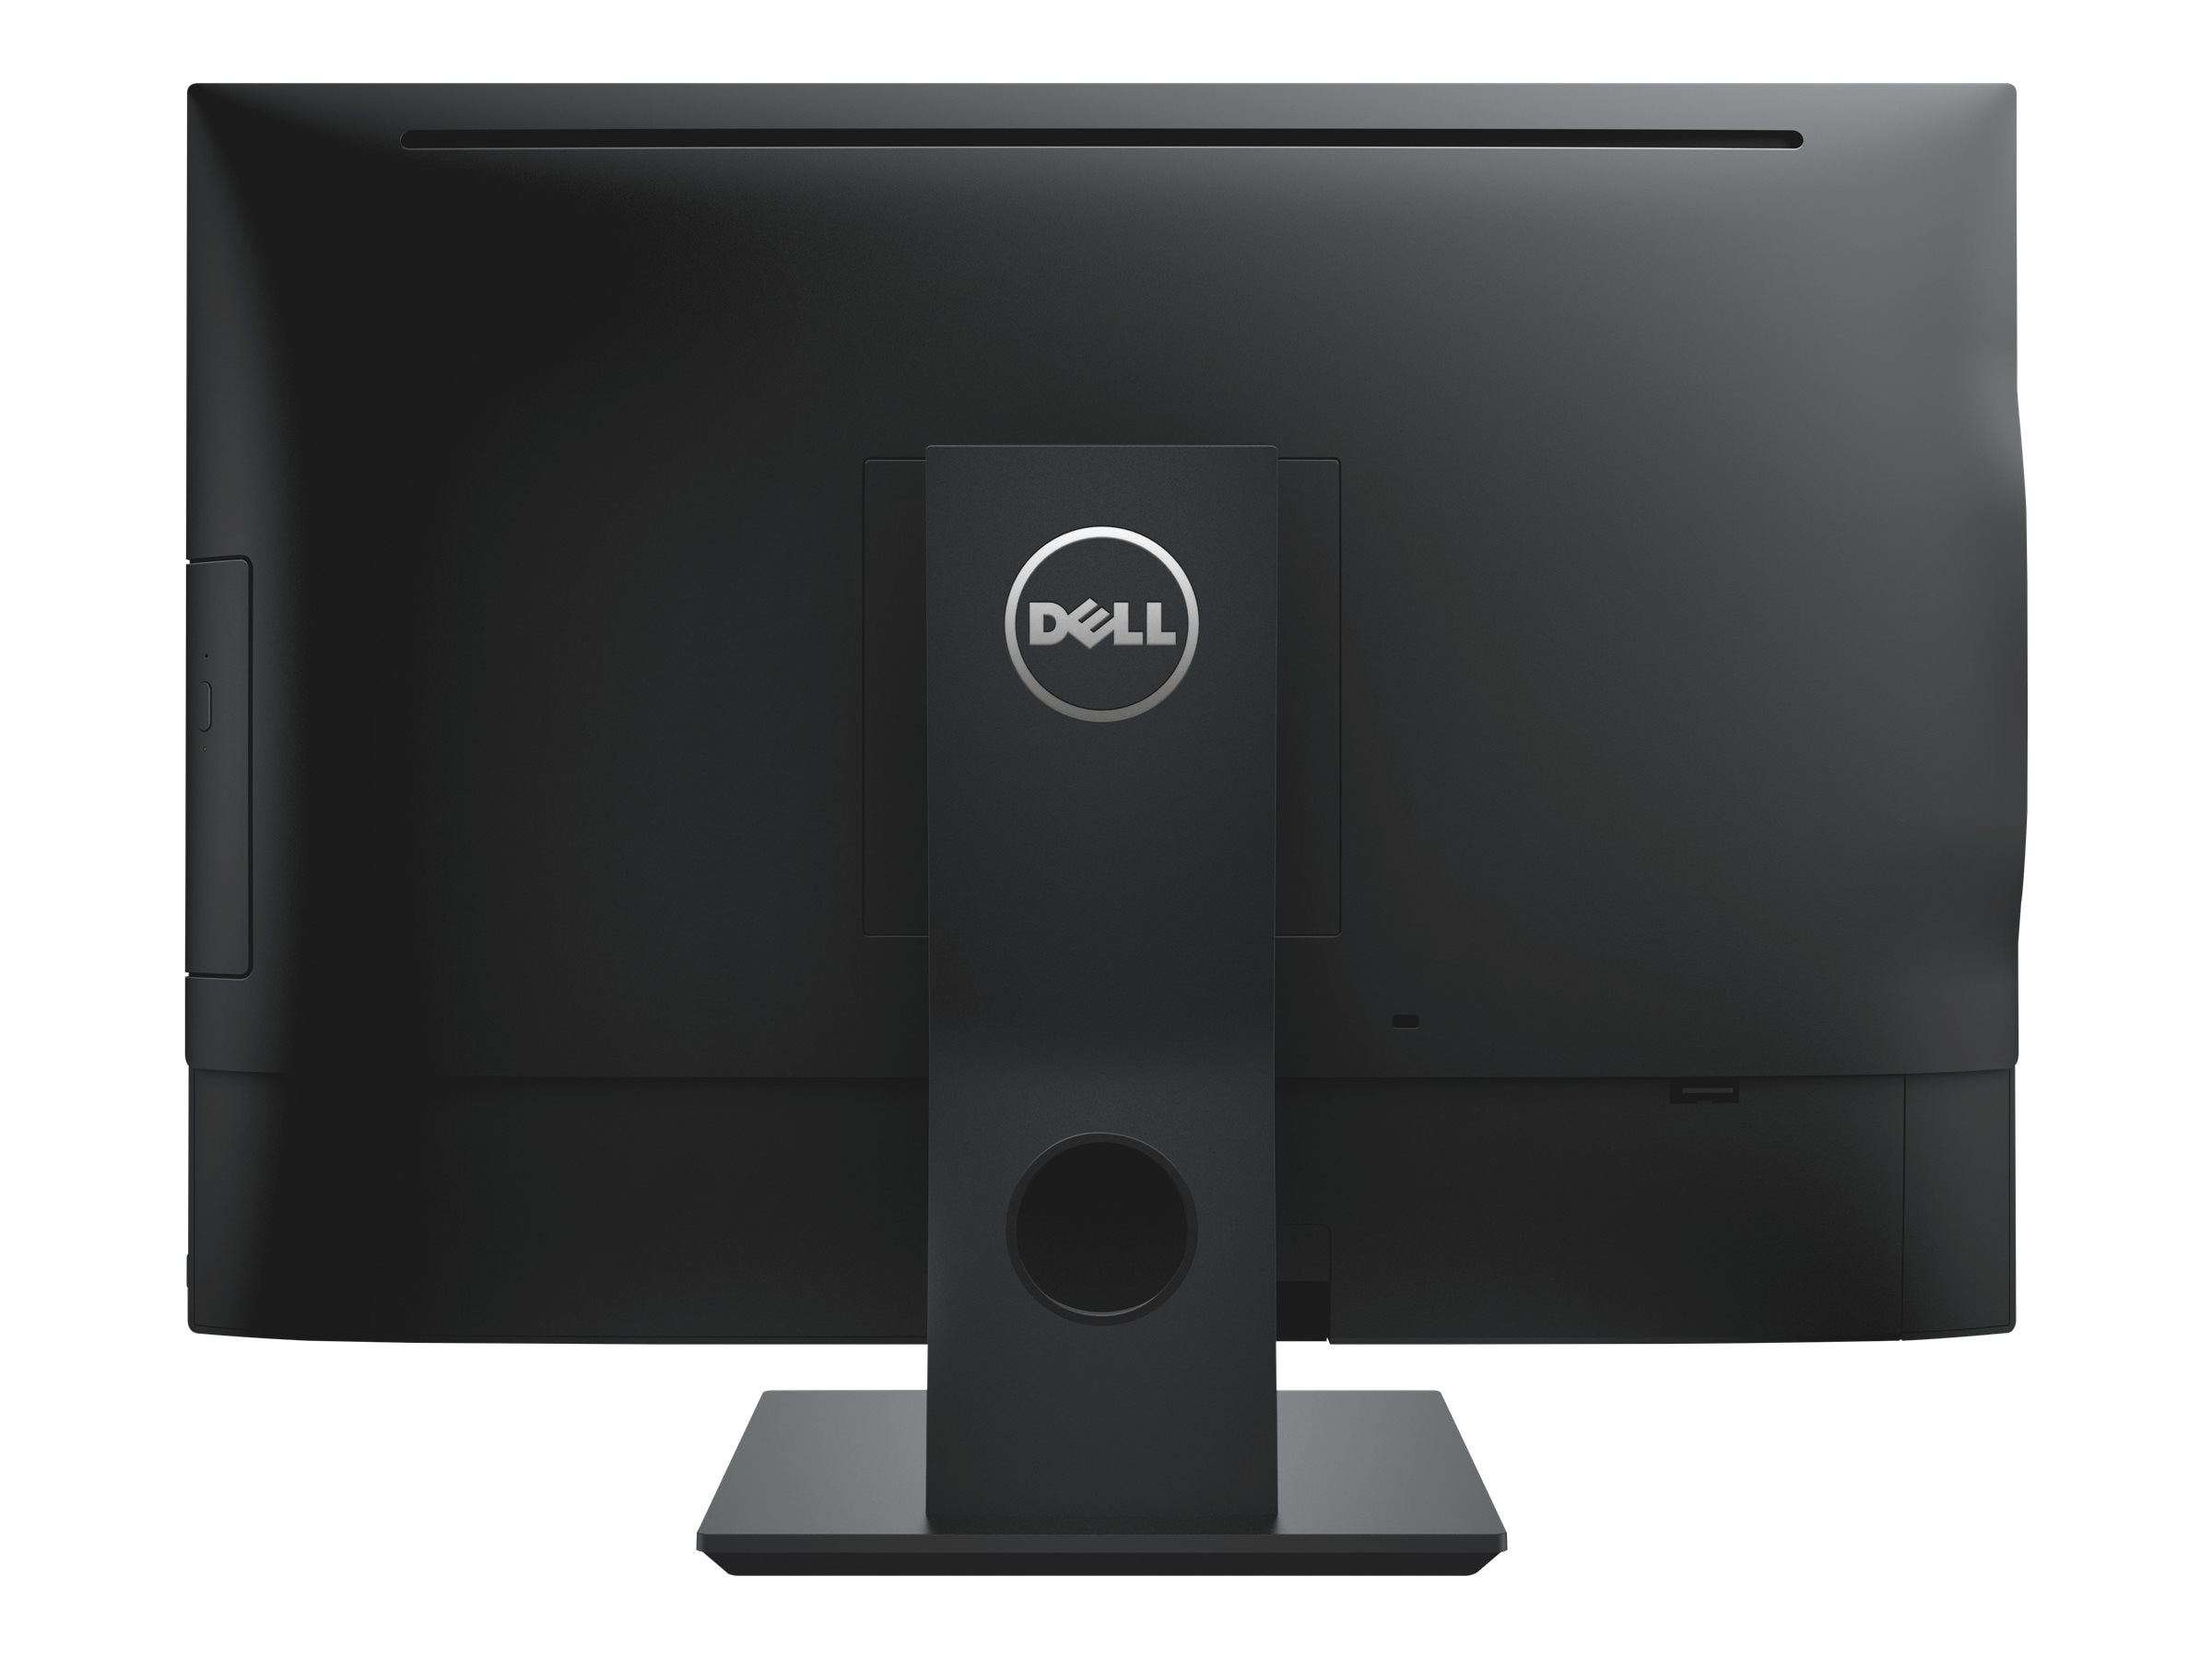 Dell OptiPlex 7440 AIO Core i5-6500 3.2GHz 4GB 500GB HD530 DVD+RW GbE ac BT WC 23 FHD W7P64-W10P, 7DG5D